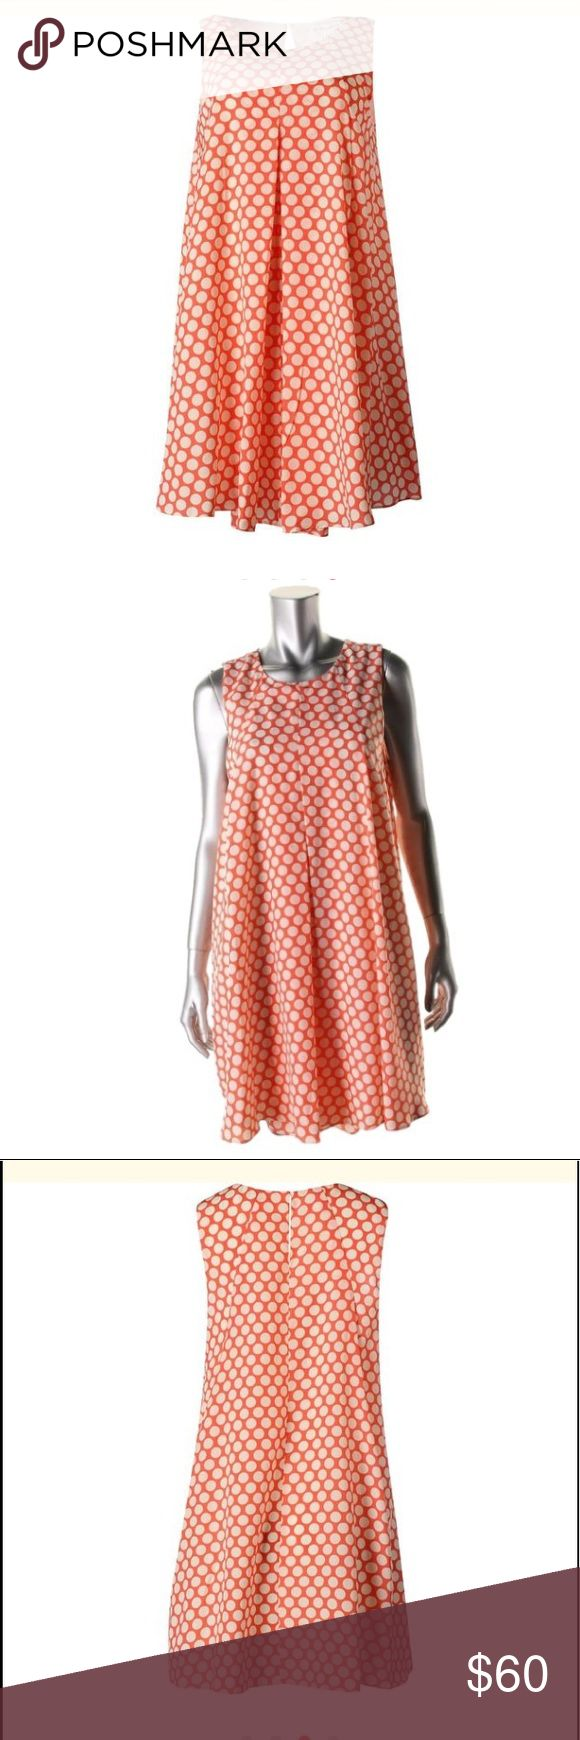 BCBGeneration  Pink Chiffon Polka Dot BCBGeneration  Pink Chiffon Polka Dot Sleeveless Casual Dress S   Manufacturer: BCBGeneration  Size Origin: US  Manufacturer Color: Salmon Wine Combo  Condition: New with tags  Style Type: Shirt Dress  Collection: BCBGeneration  Silhouette: Shift  Sleeve Length: Sleeveless  Closure: Hook/Eye Closure  Dress Length: Above Knee, Mini  Total Length: 34 Inches  Bust Across: 17 Inches  Waist Across: 20 Inches  Hips Across: Inches  Material: 100% Polyester…